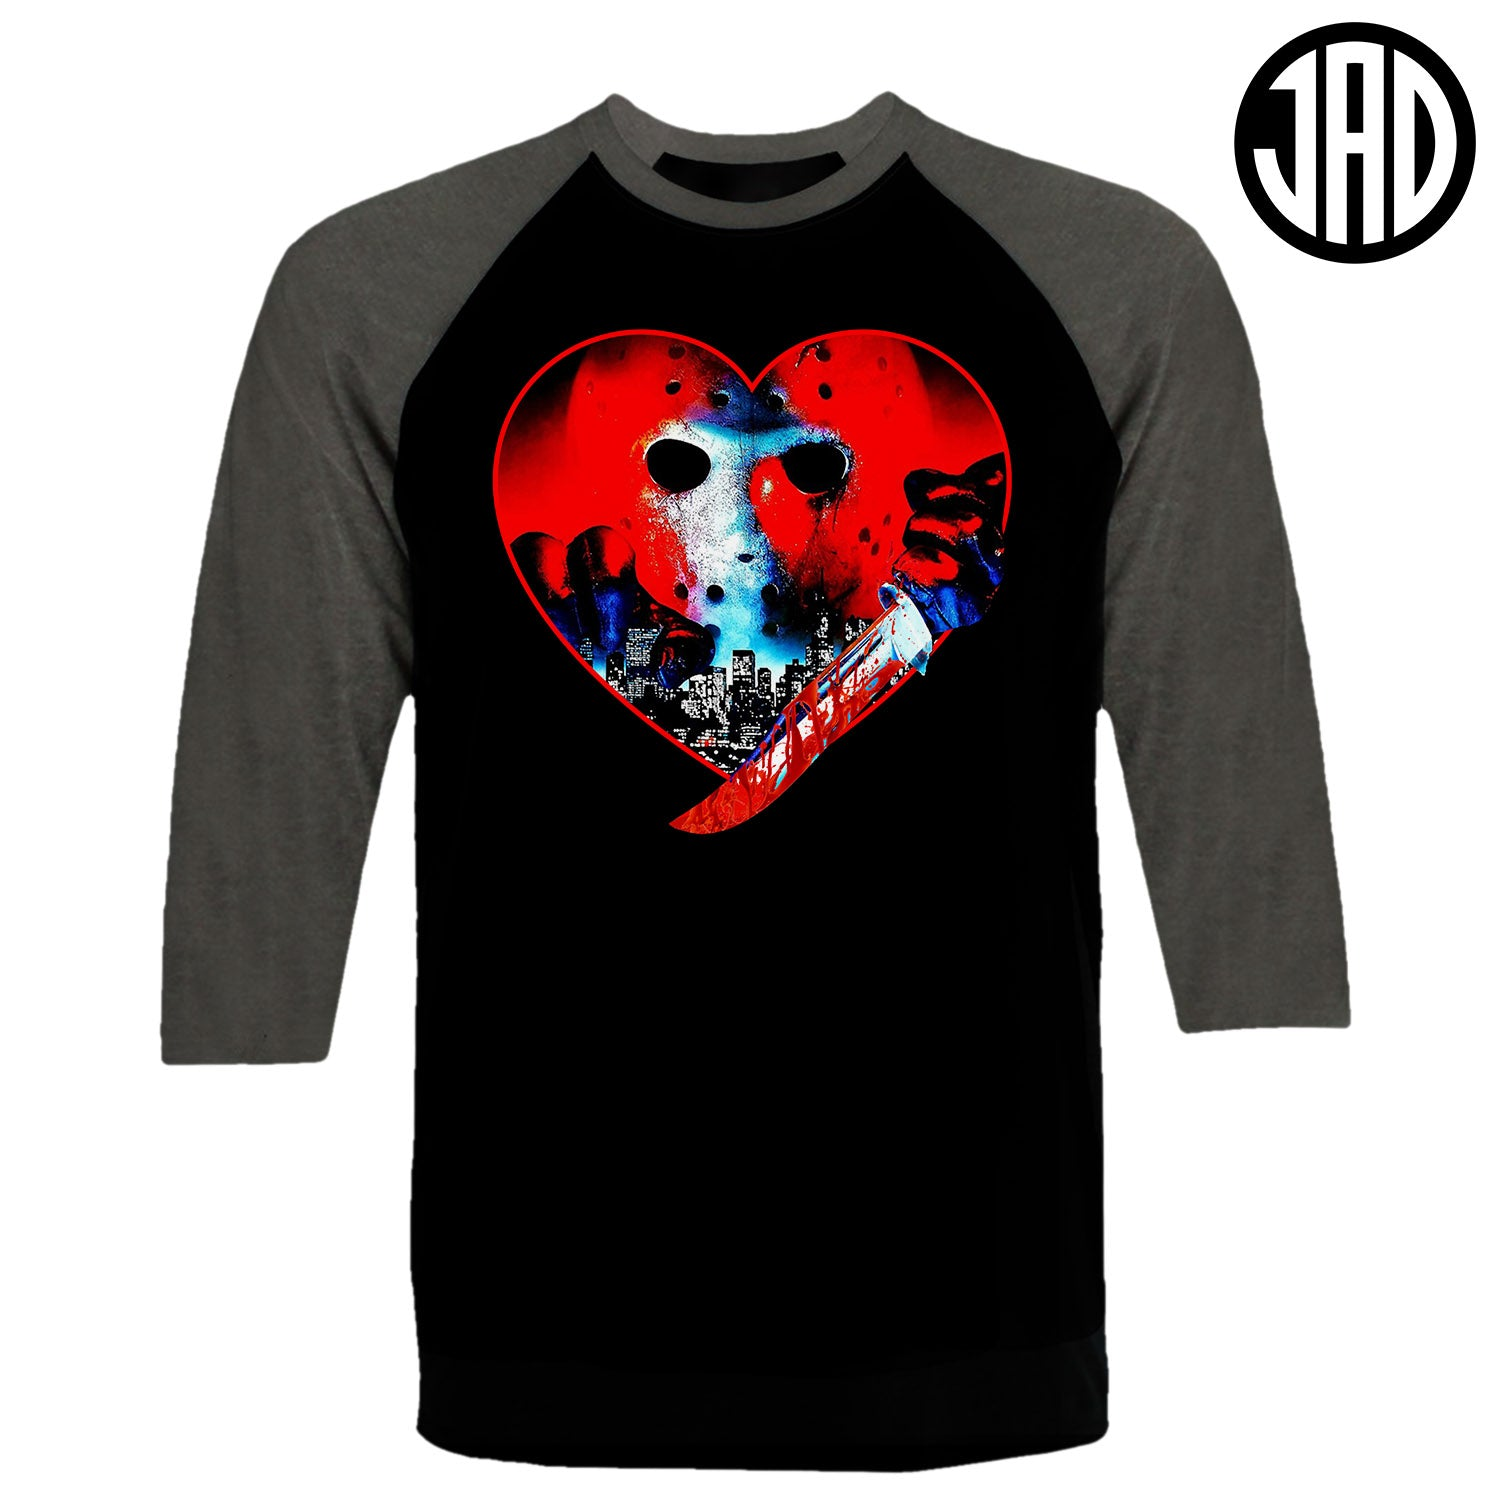 NY Love - Men's (Unisex) Baseball Tee